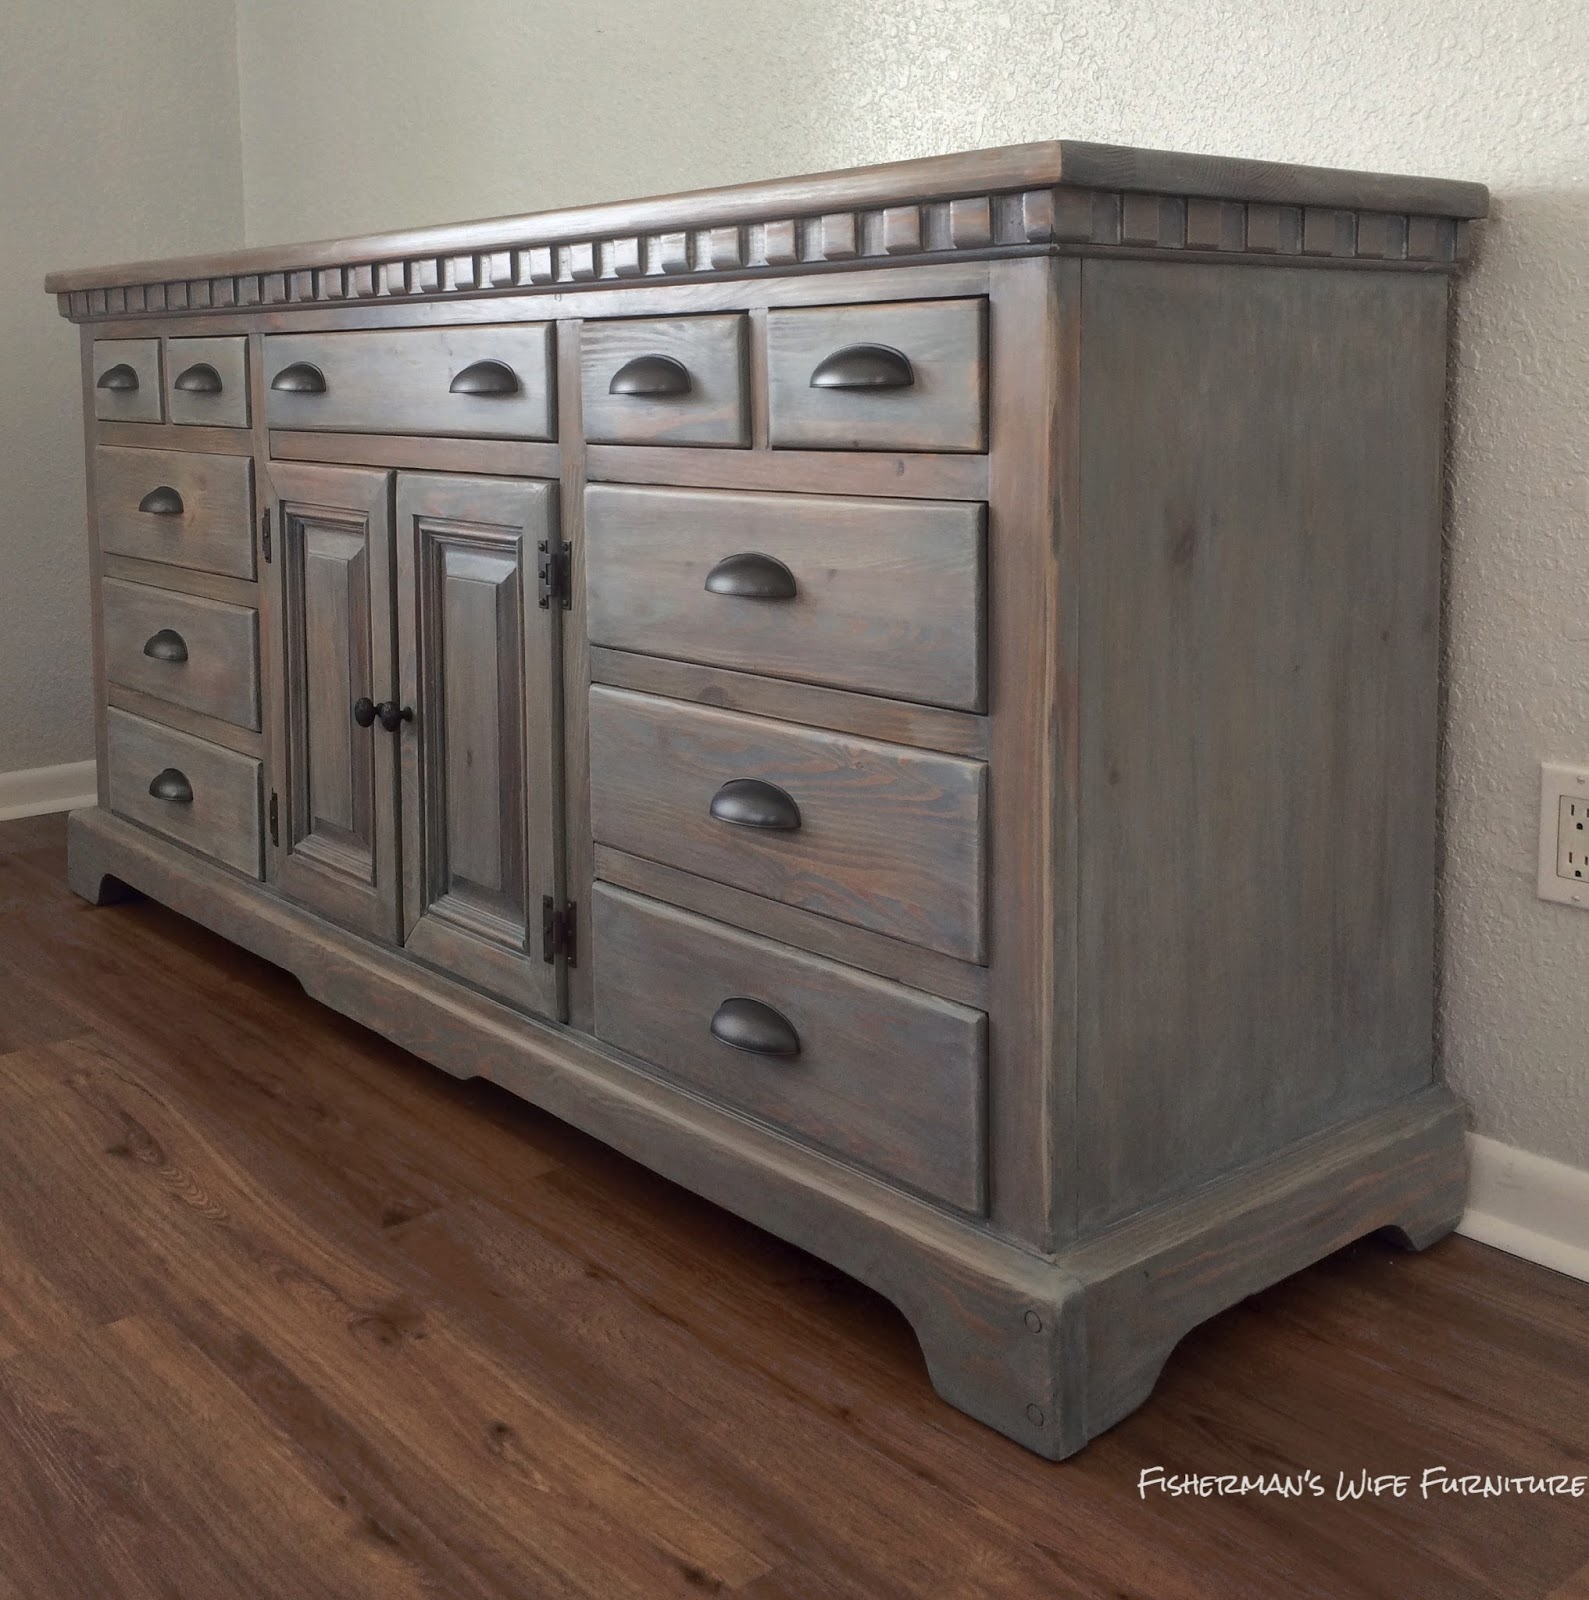 Fisherman 39 S Wife Furniture Master Bedroom Dresser Reveal